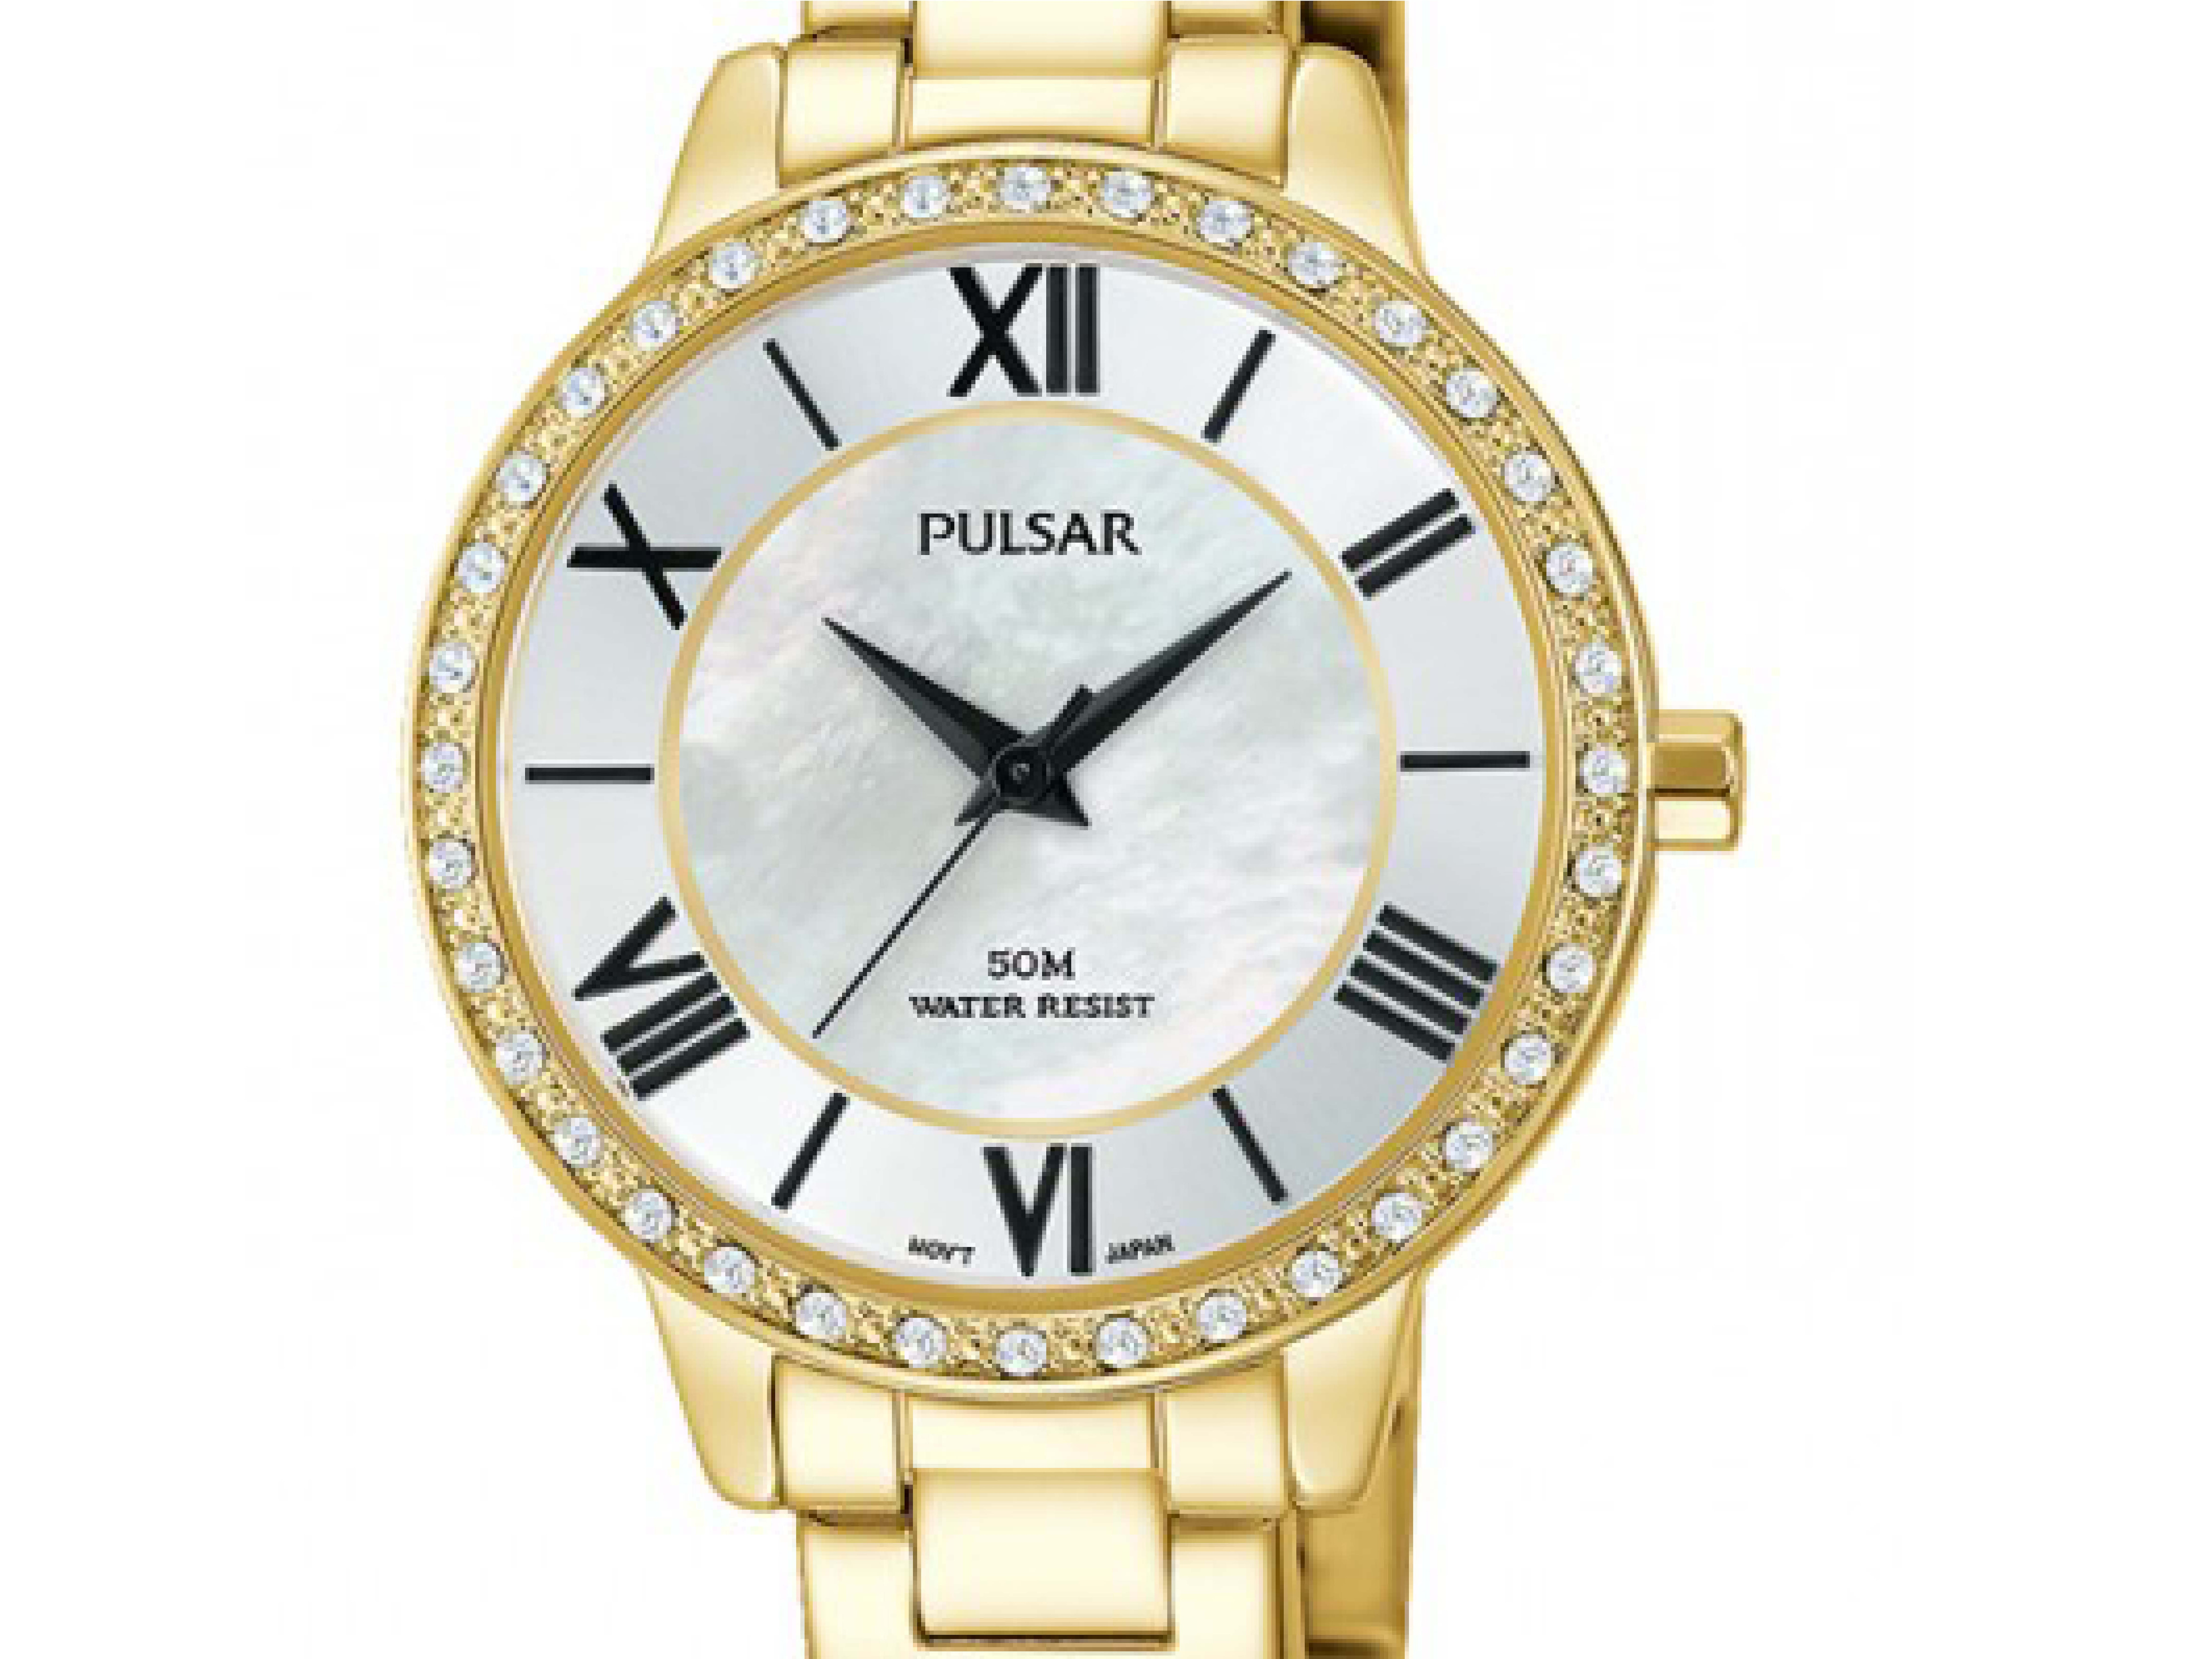 Women's Pulsar Watch sweepstakes